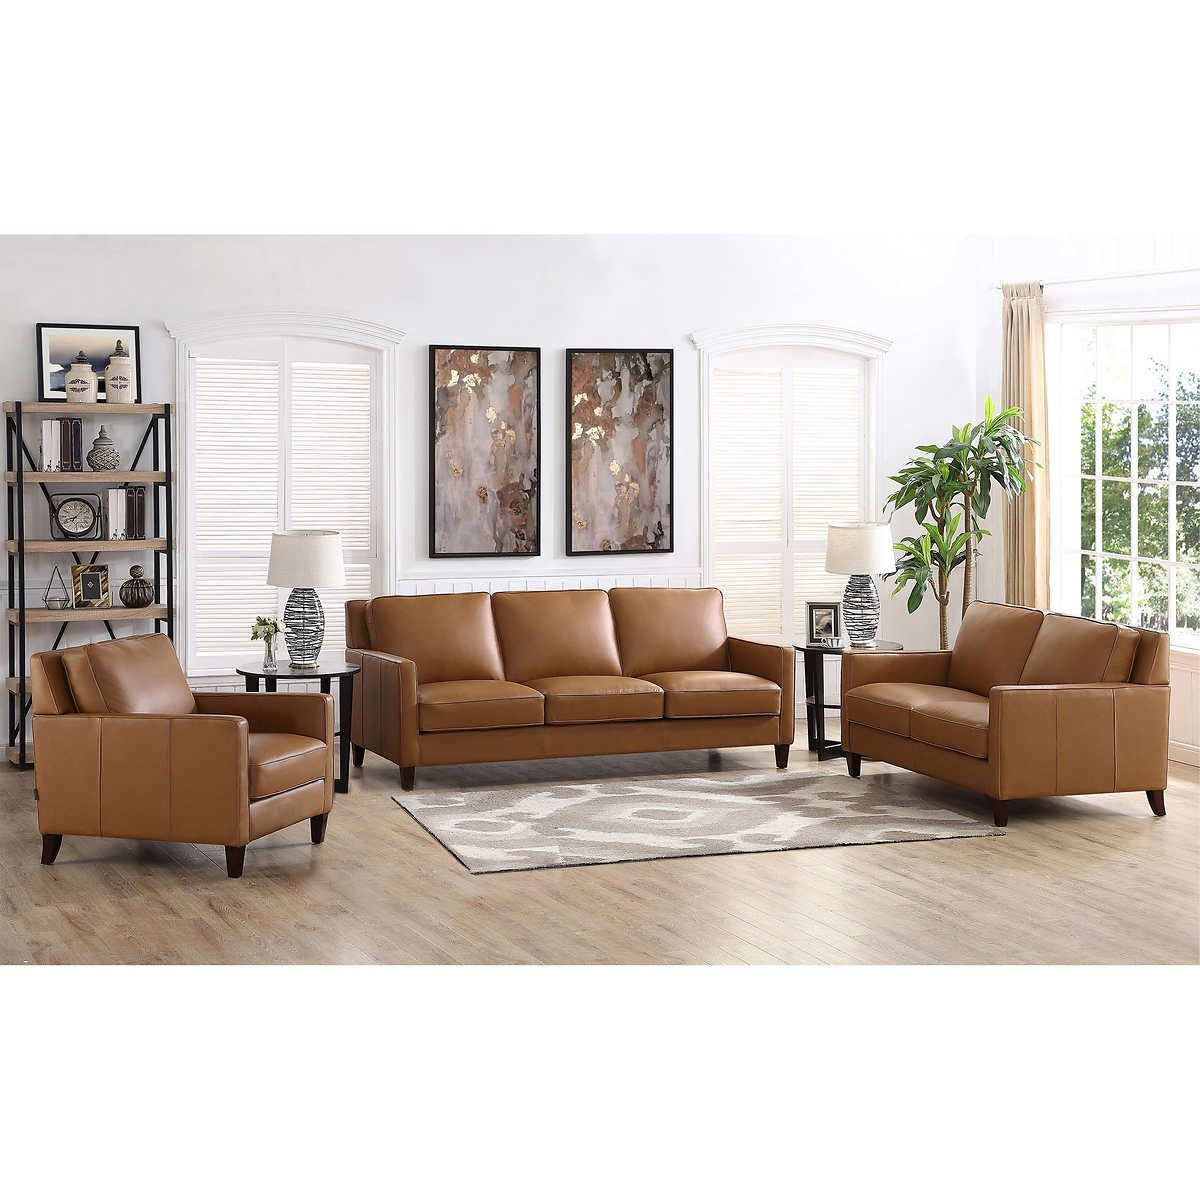 Best Brown 1 Living Room Sets Living Room Leather 3 Piece 400 x 300